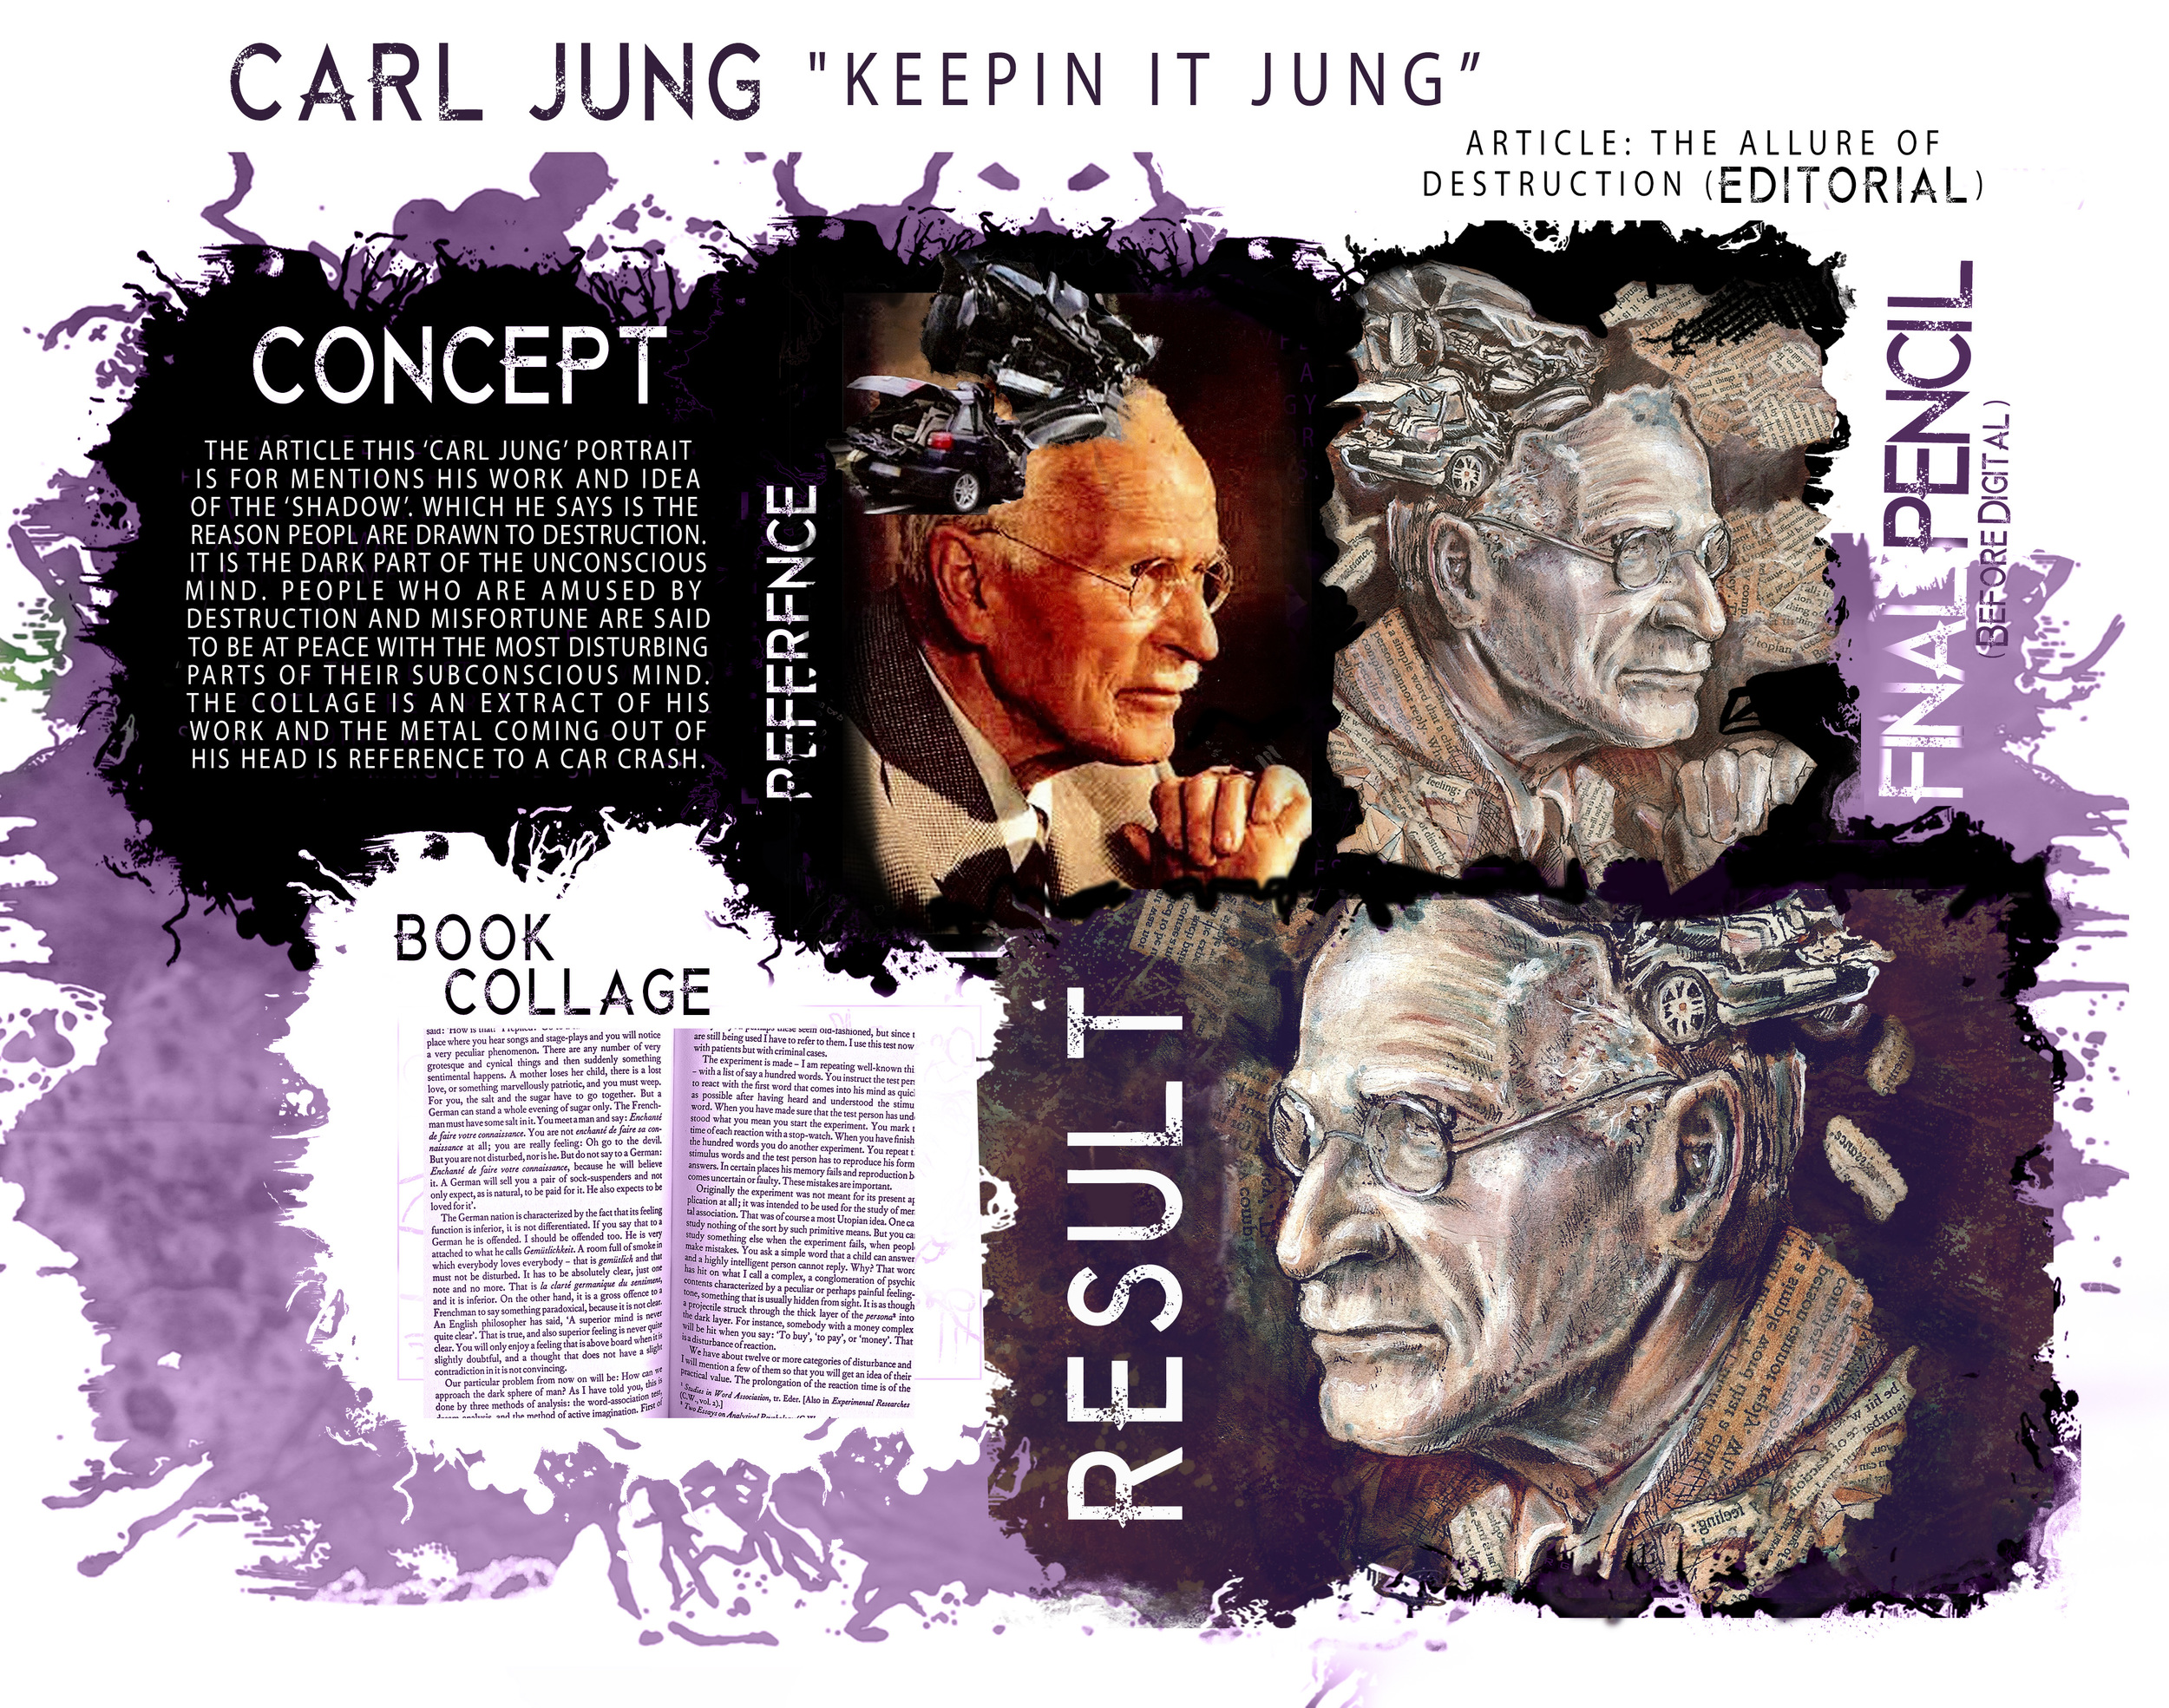 march CARL JUNG PROCESS LAYOUT 02.26.jpg